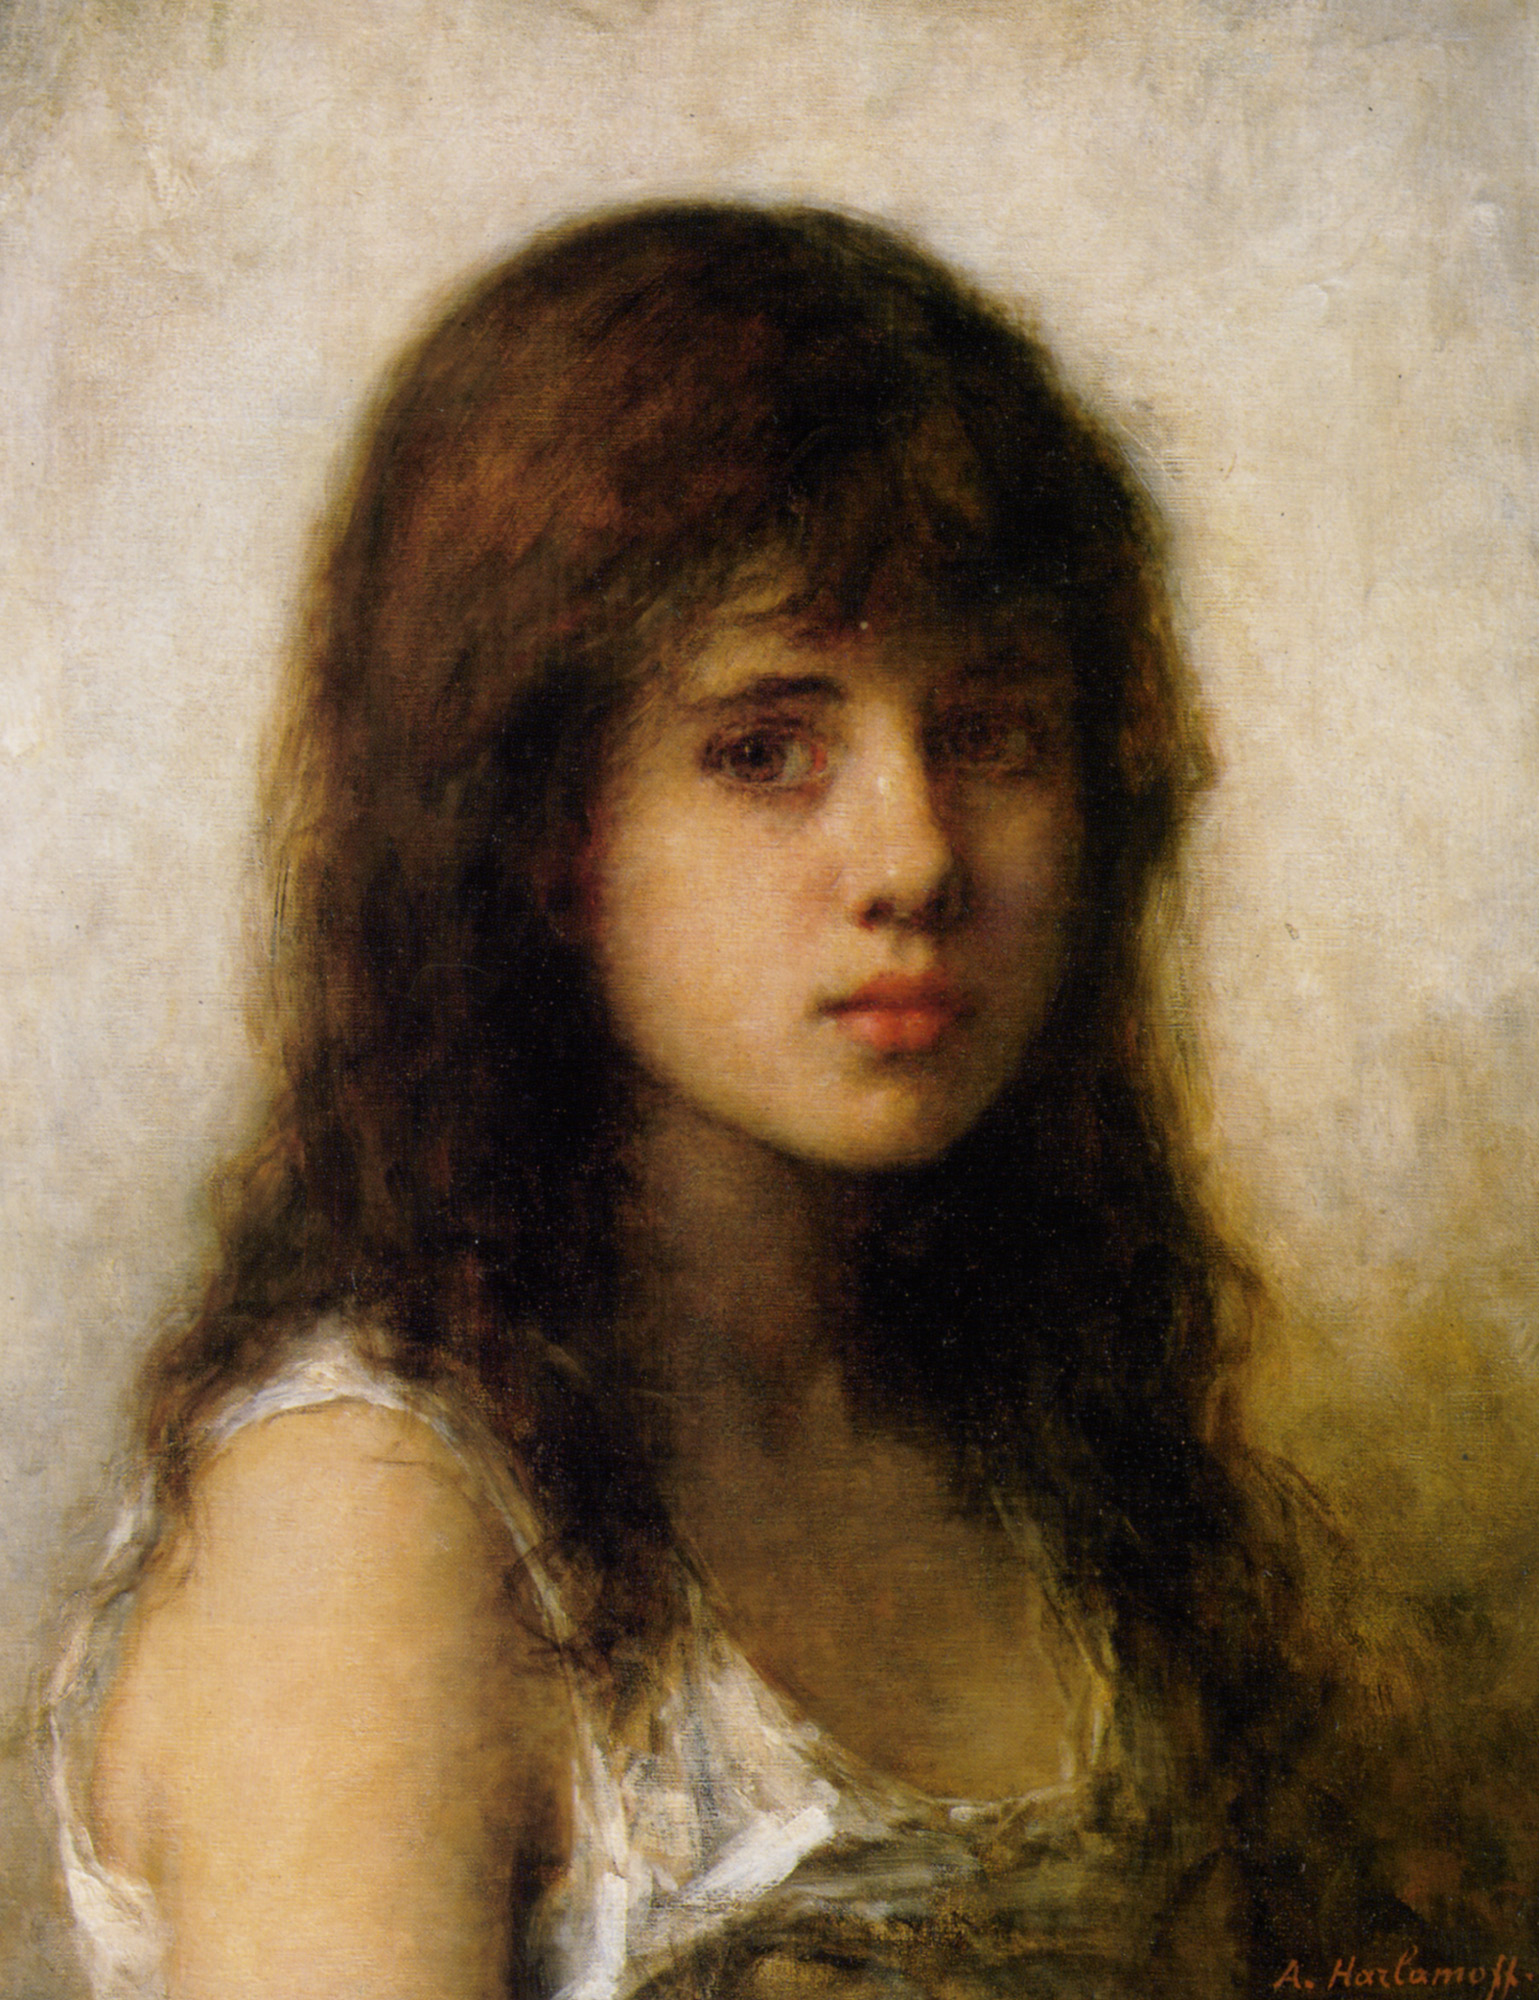 1539x2000 Portrait Of A Young Girl Alexei Alexeivich Harlamoff - Painting Of Young Girl